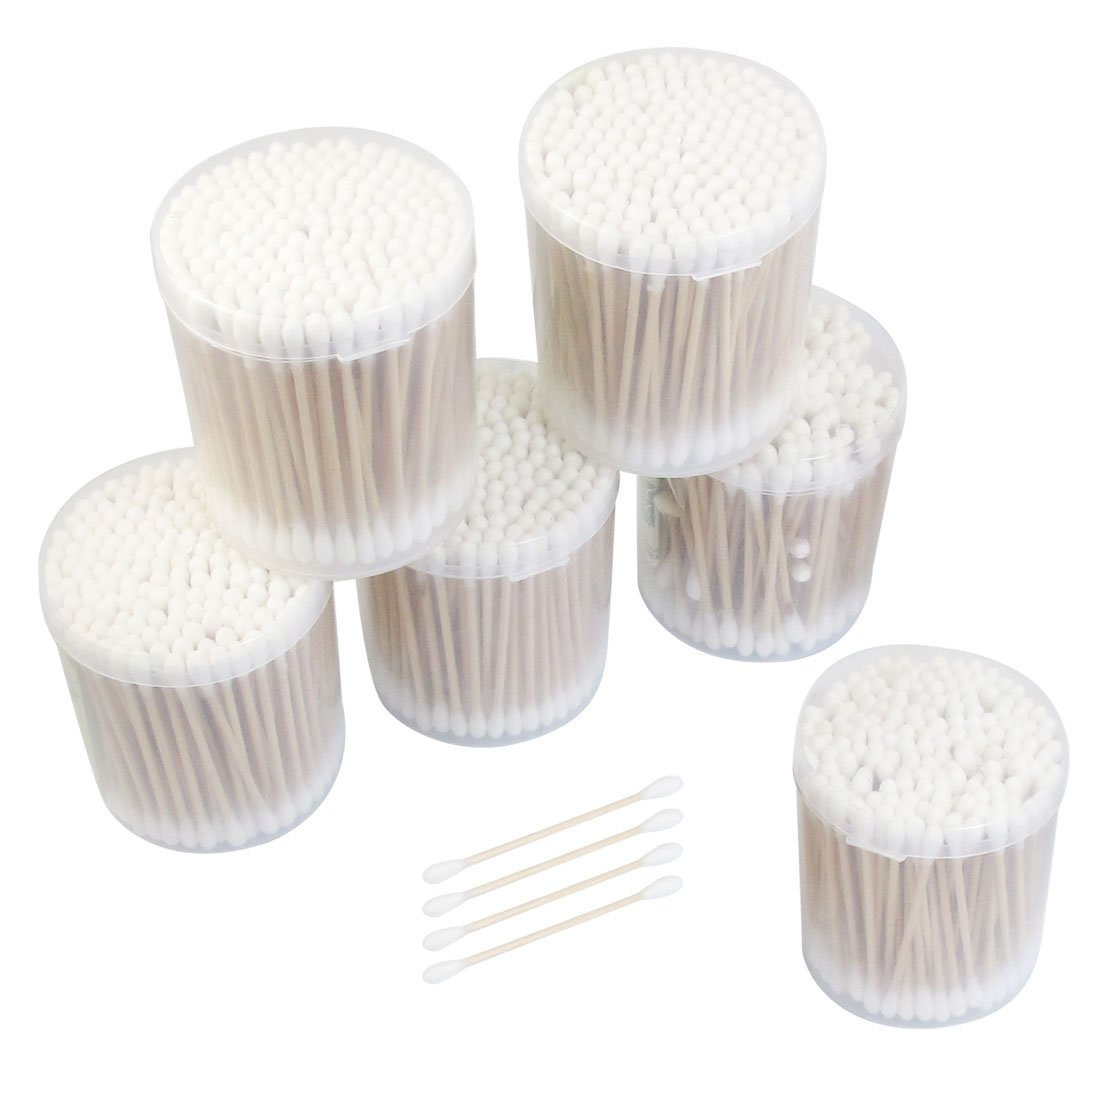 Uxcell Wooden Stick Double Head Disposable Cotton Swabs Buds, 0.67 Pound Dragonmarts Co. Ltd. / Uxcell a12092100ux0088